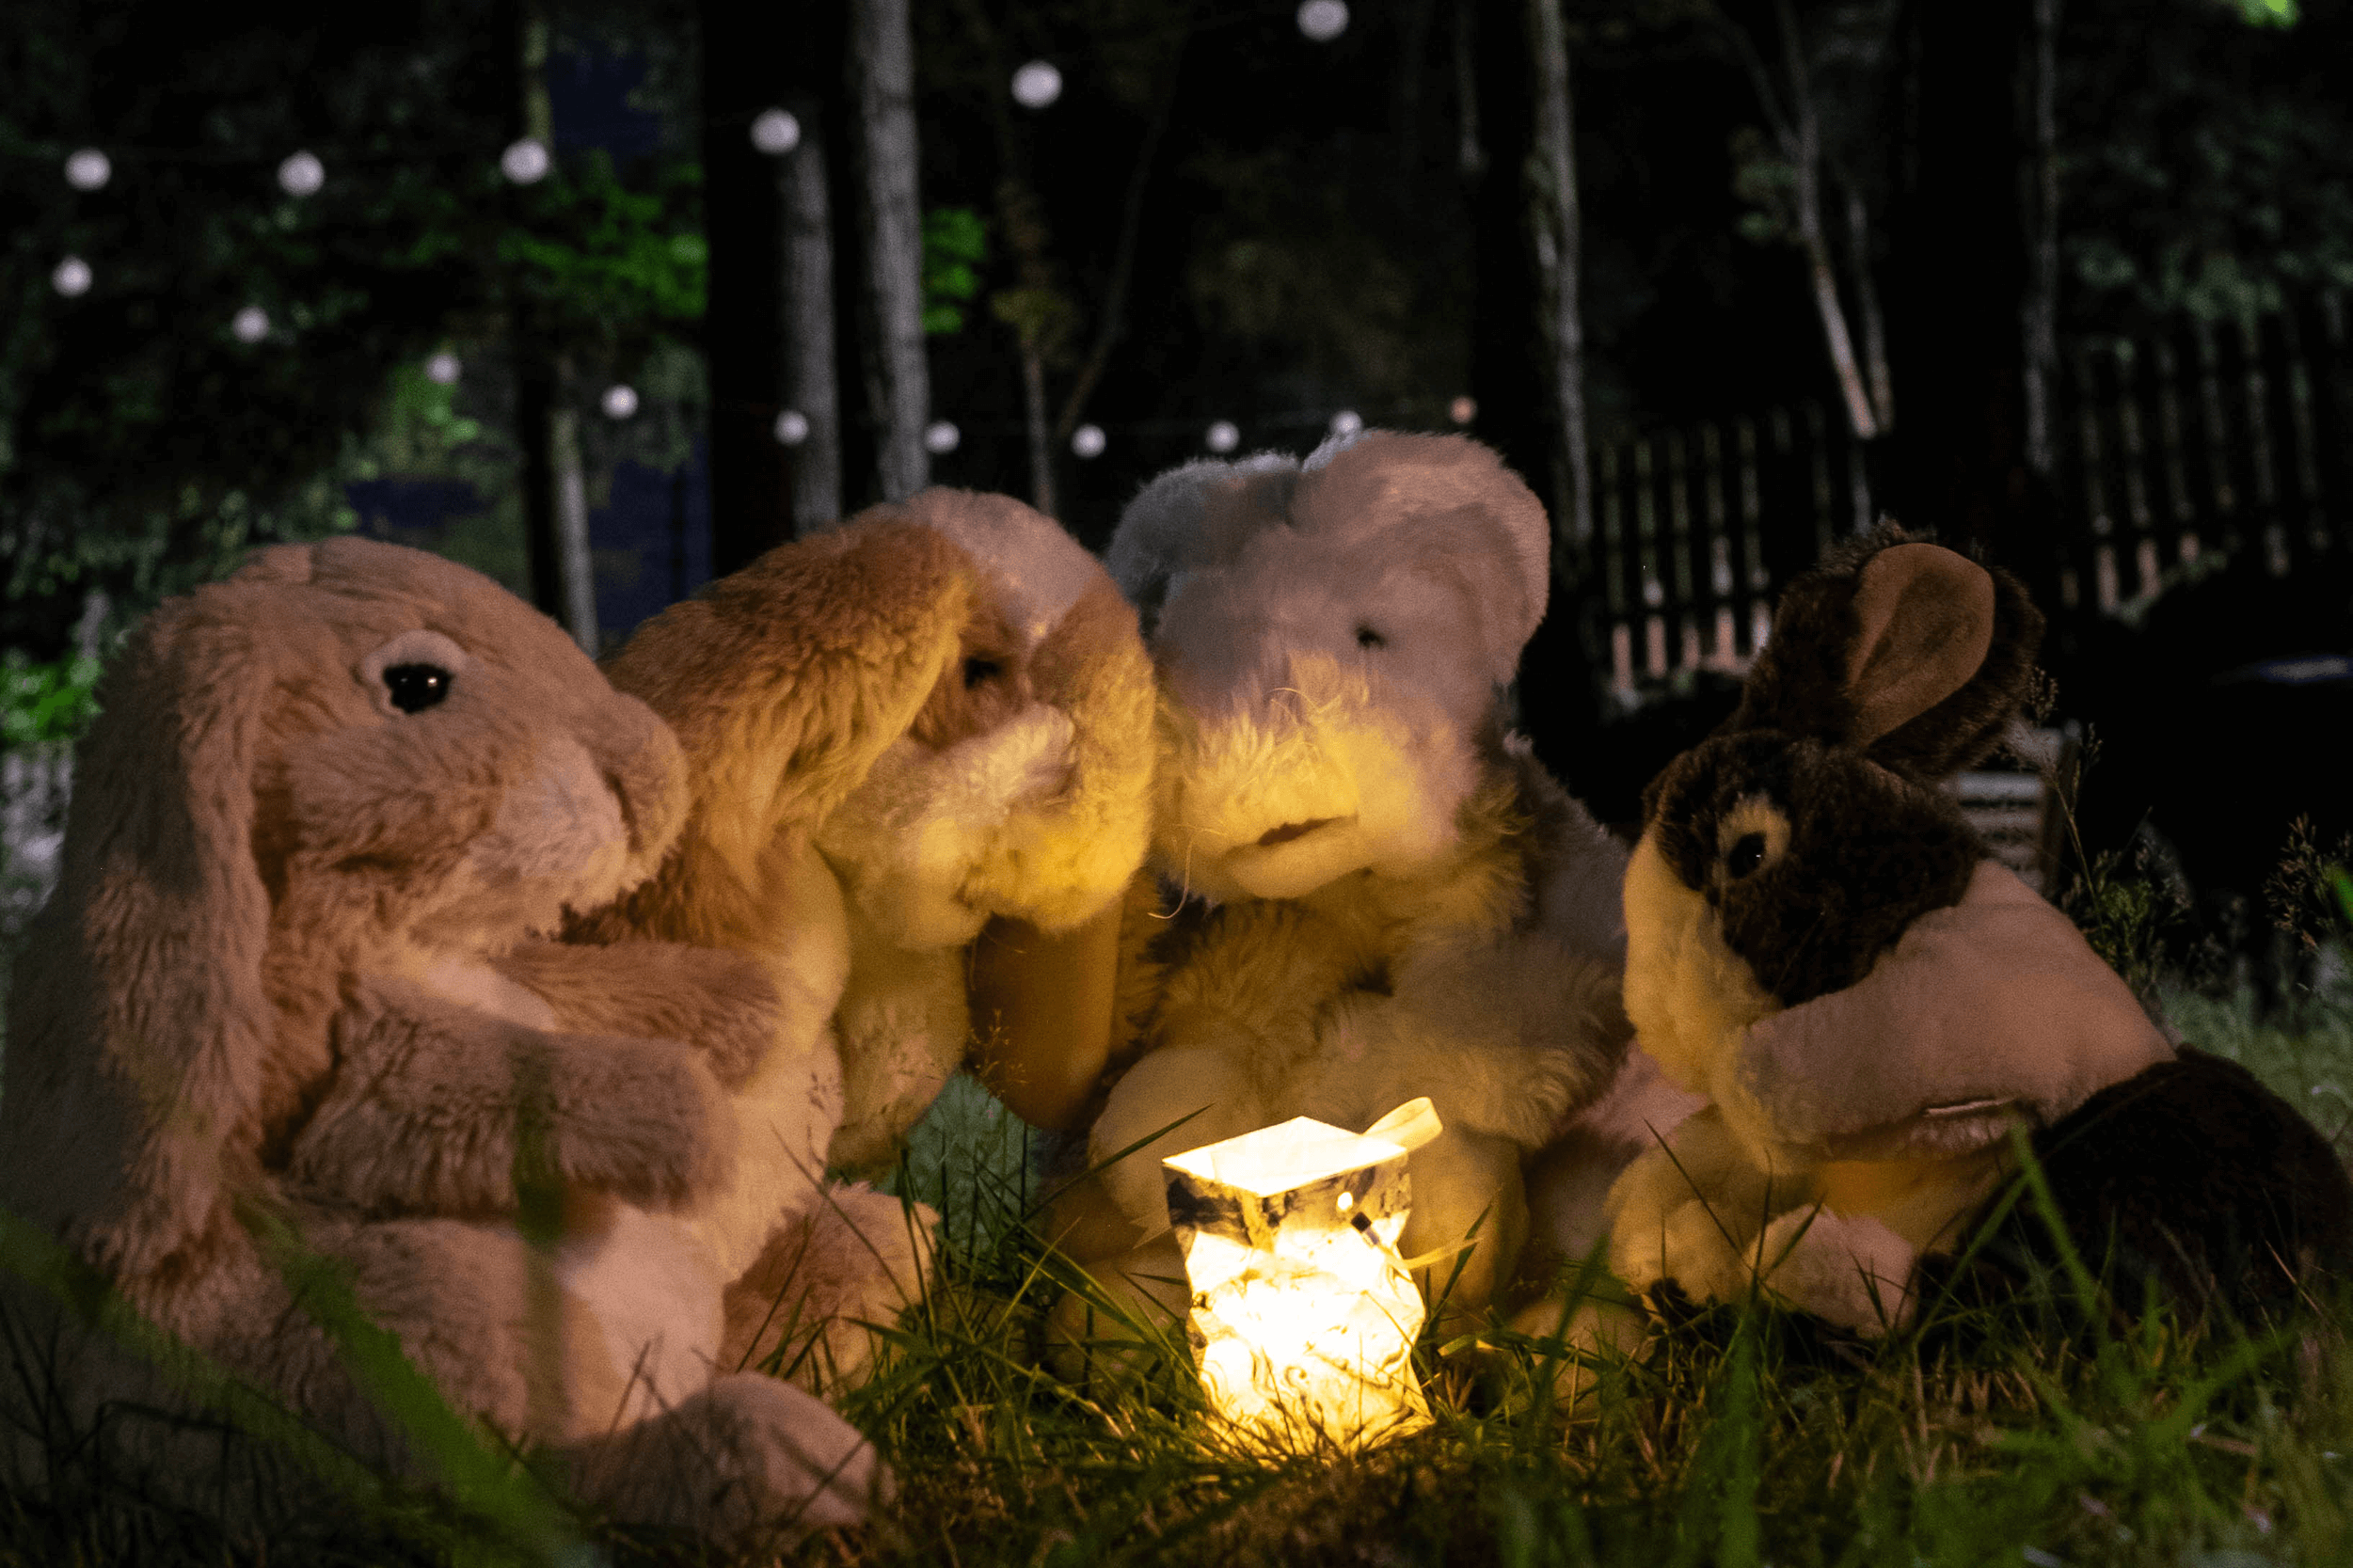 Plush bunnies gathered around a candle outside at night